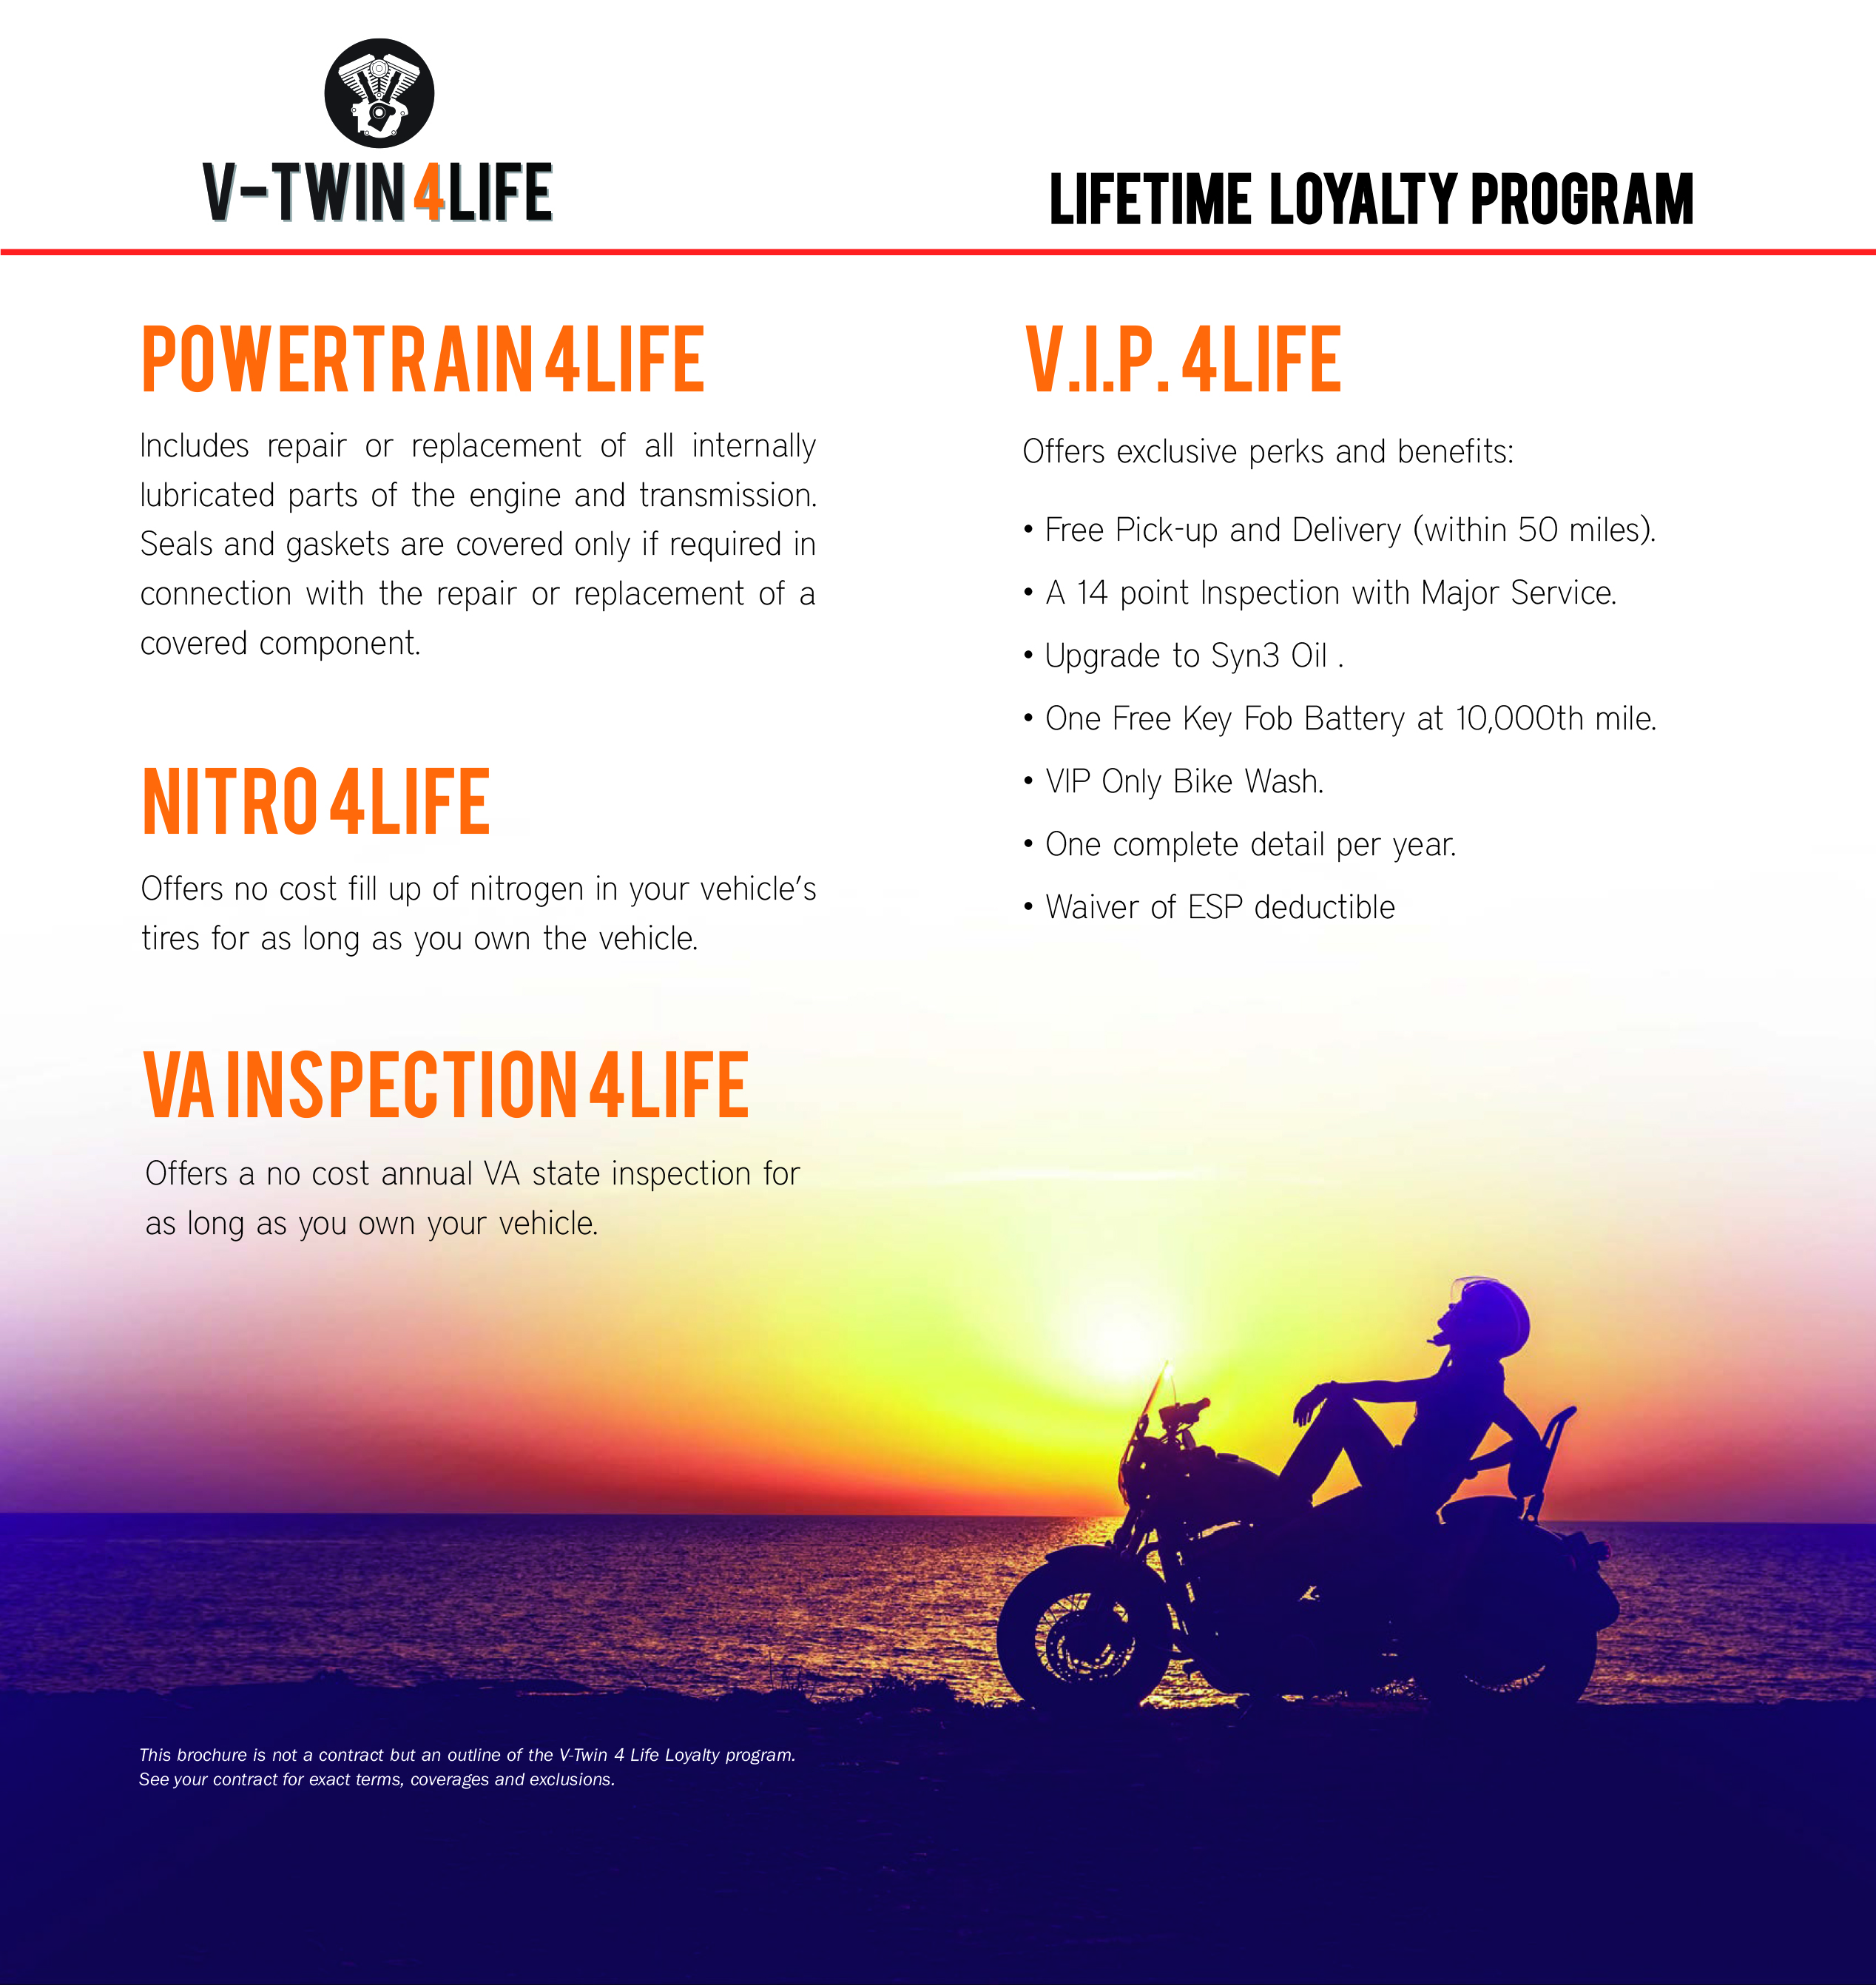 Life Time Loyalty Program